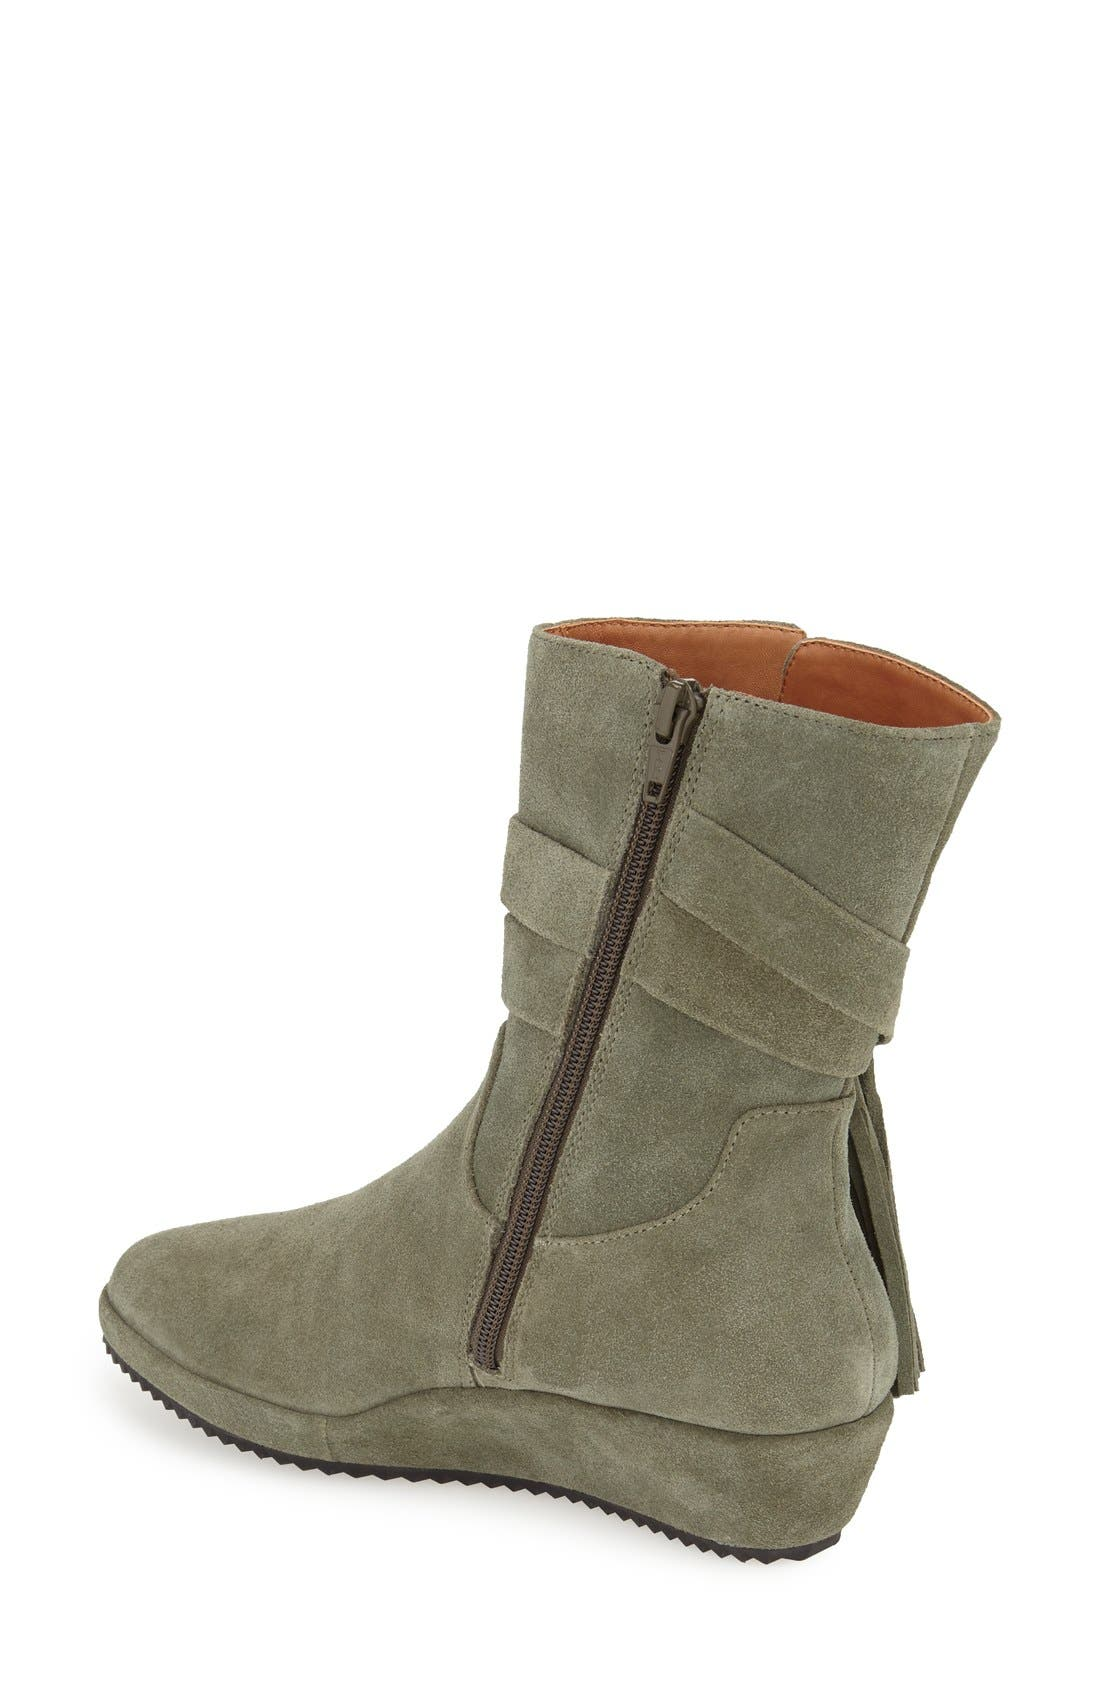 'Bernyce' Boot,                             Alternate thumbnail 2, color,                             Olive Suede Leather